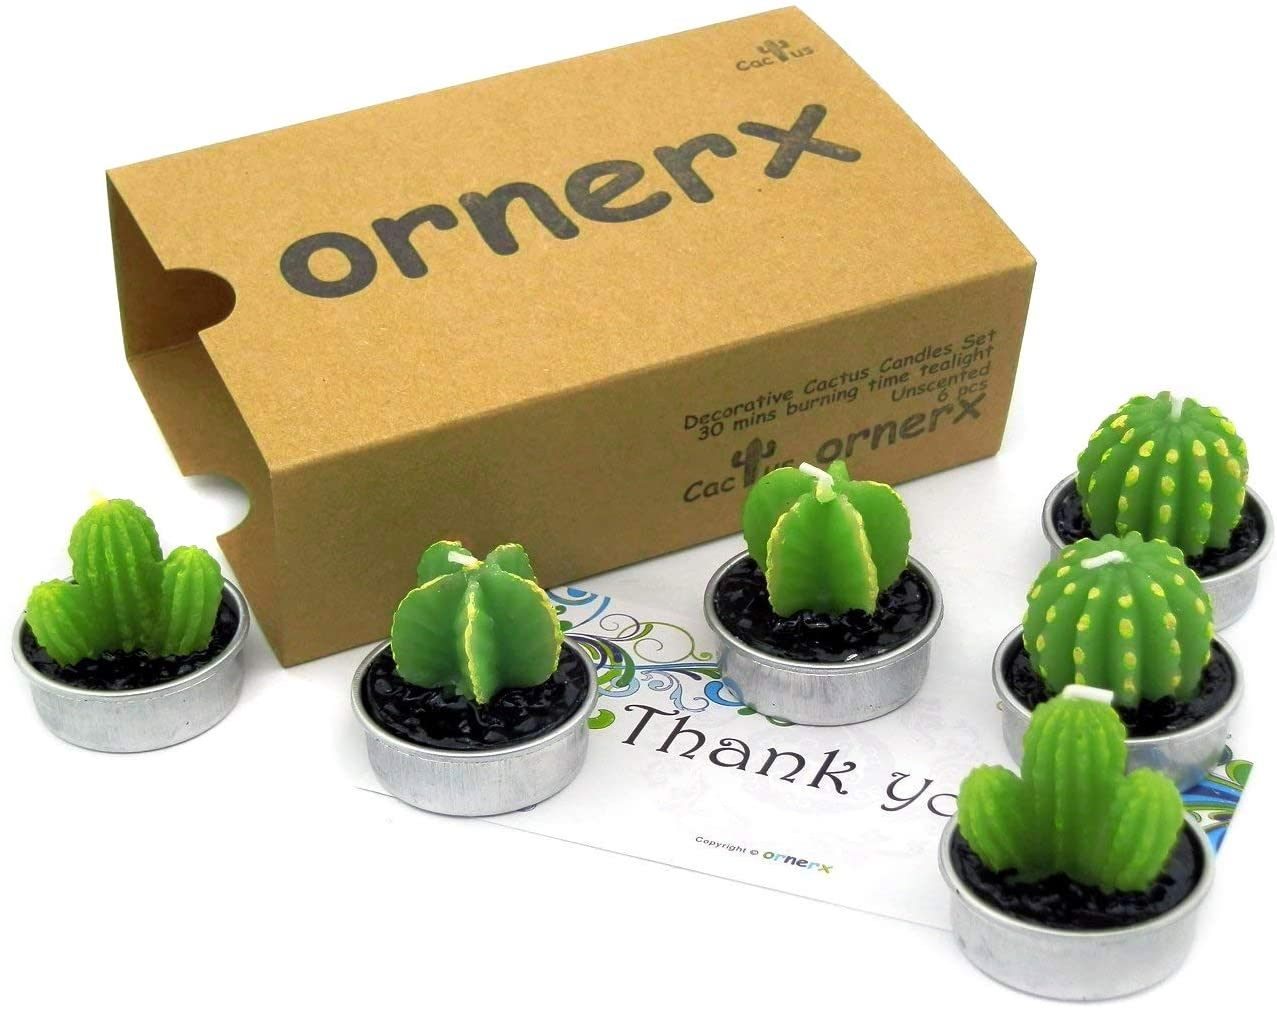 Ornerx Decorative Cactus Tea Light Candles, best gifts for mom